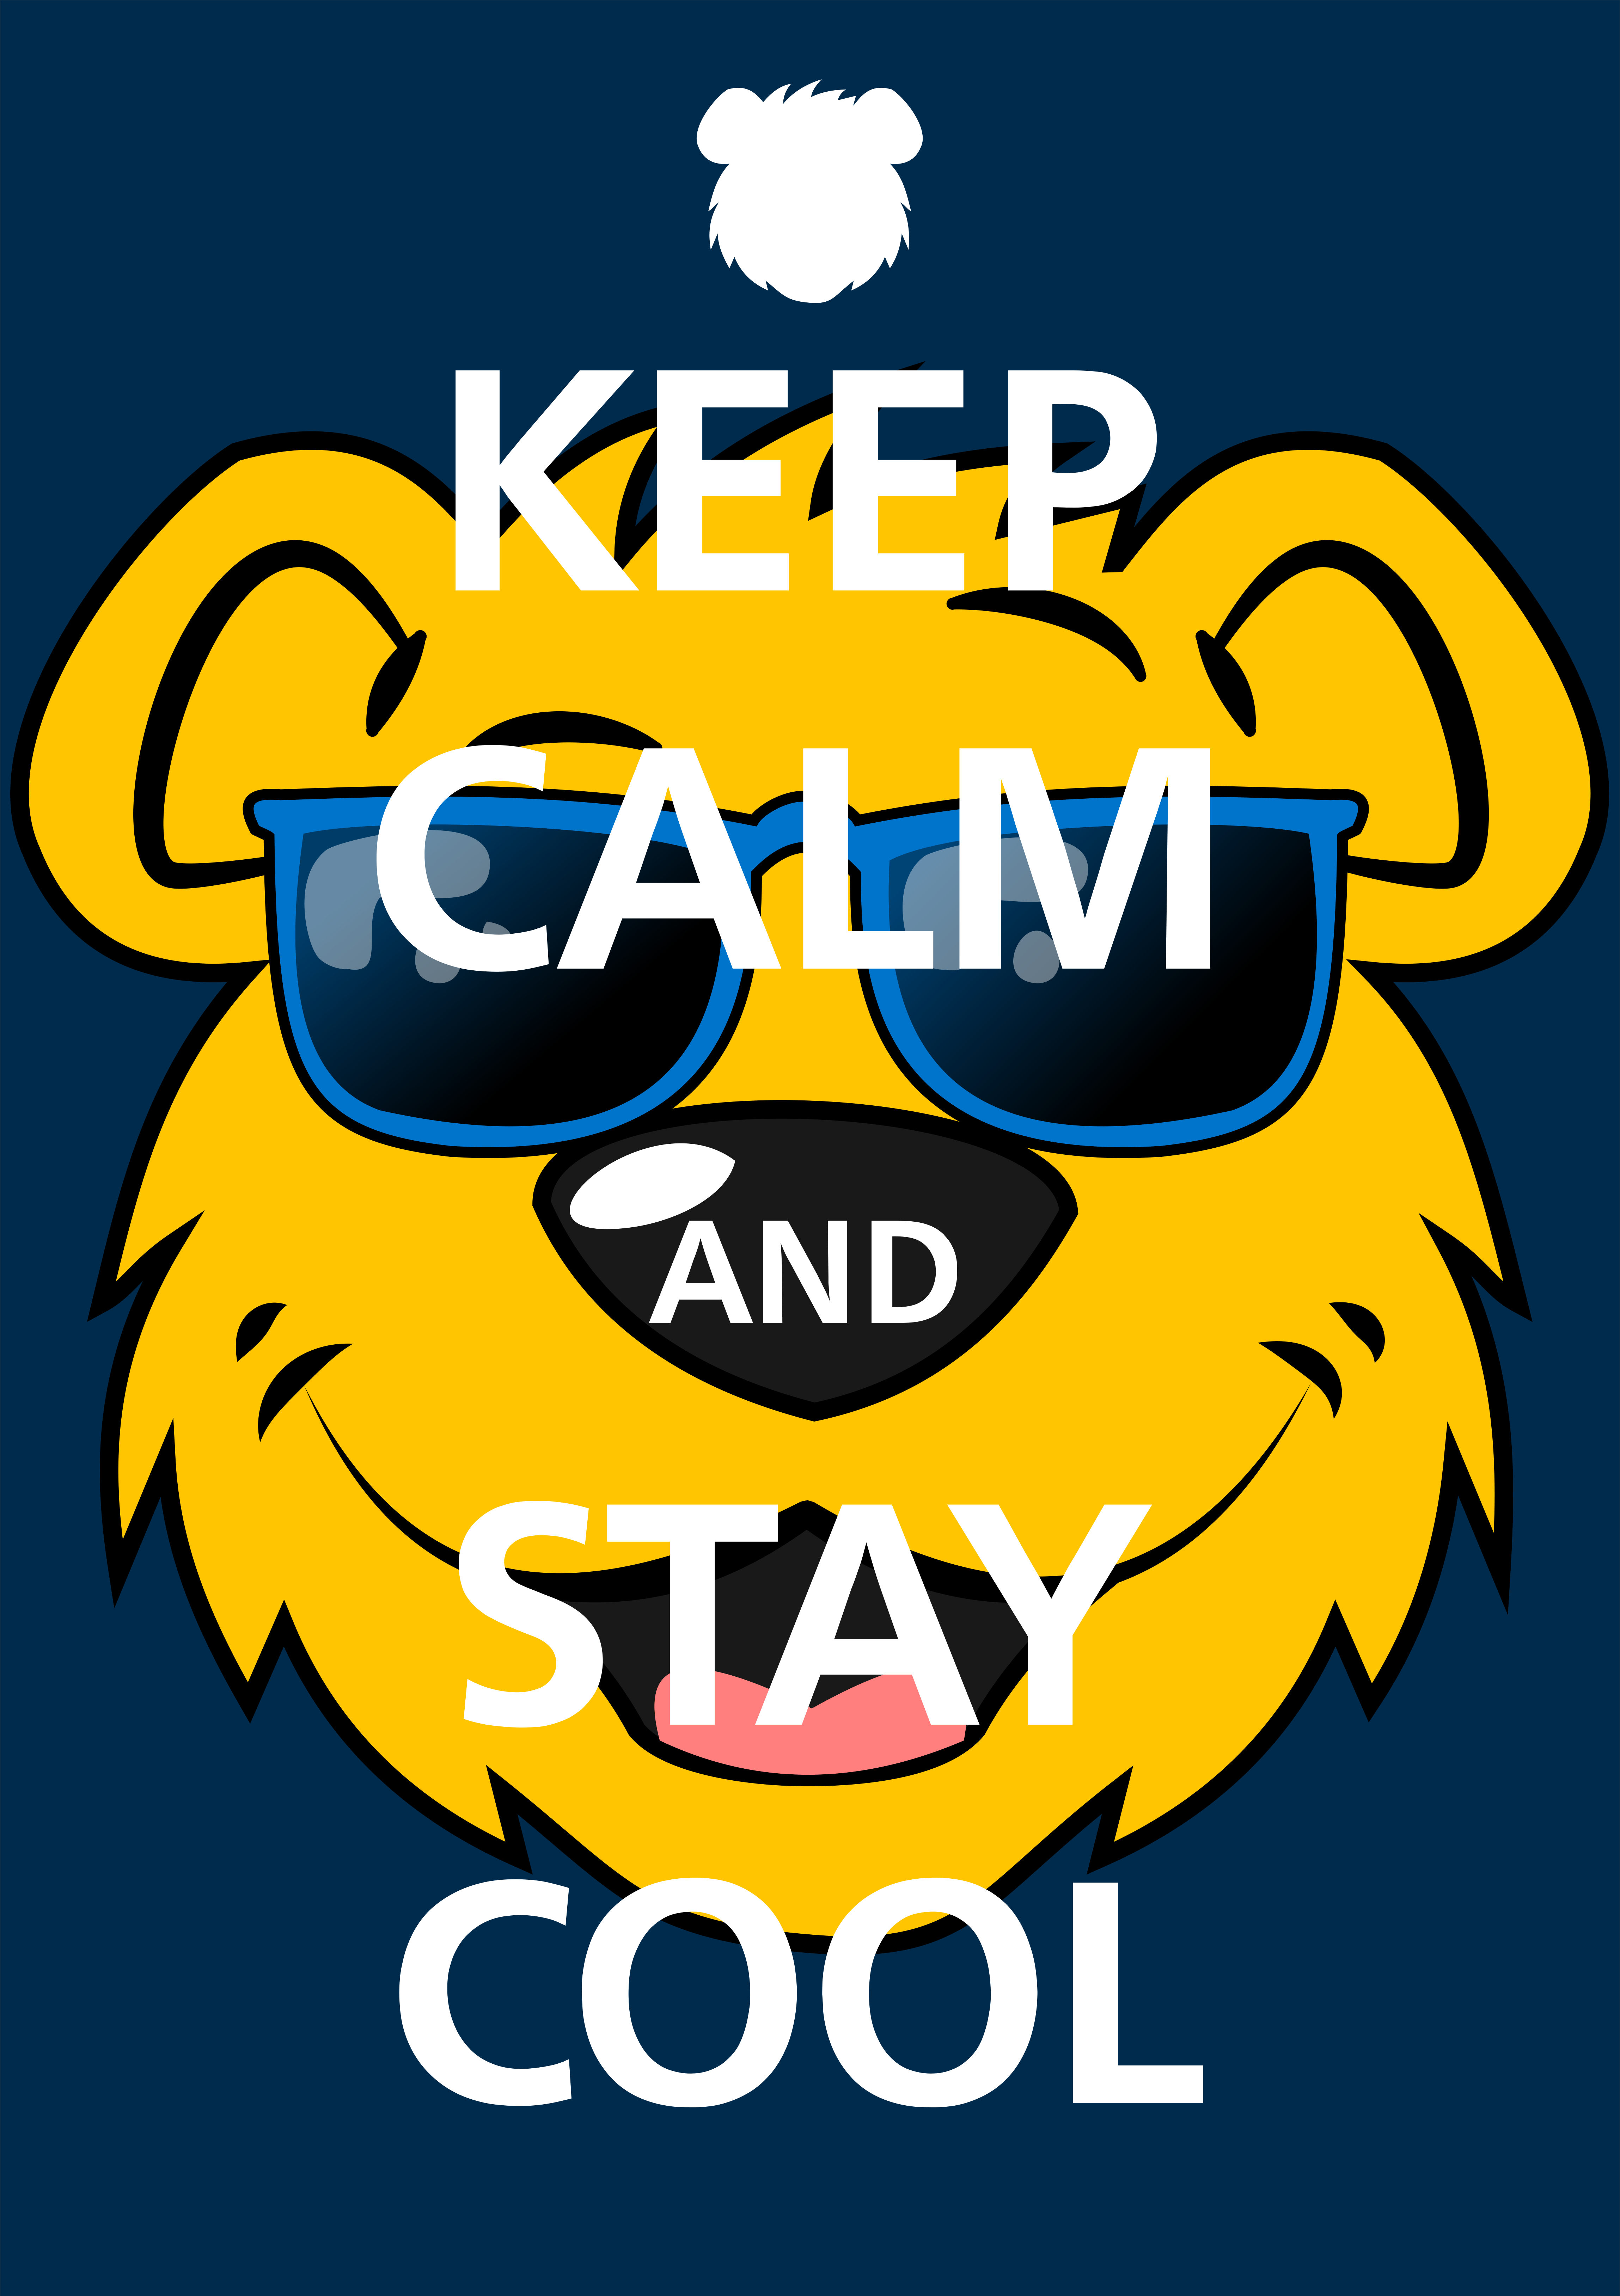 Ben the Bear with Keep Calm and Stay Cool text